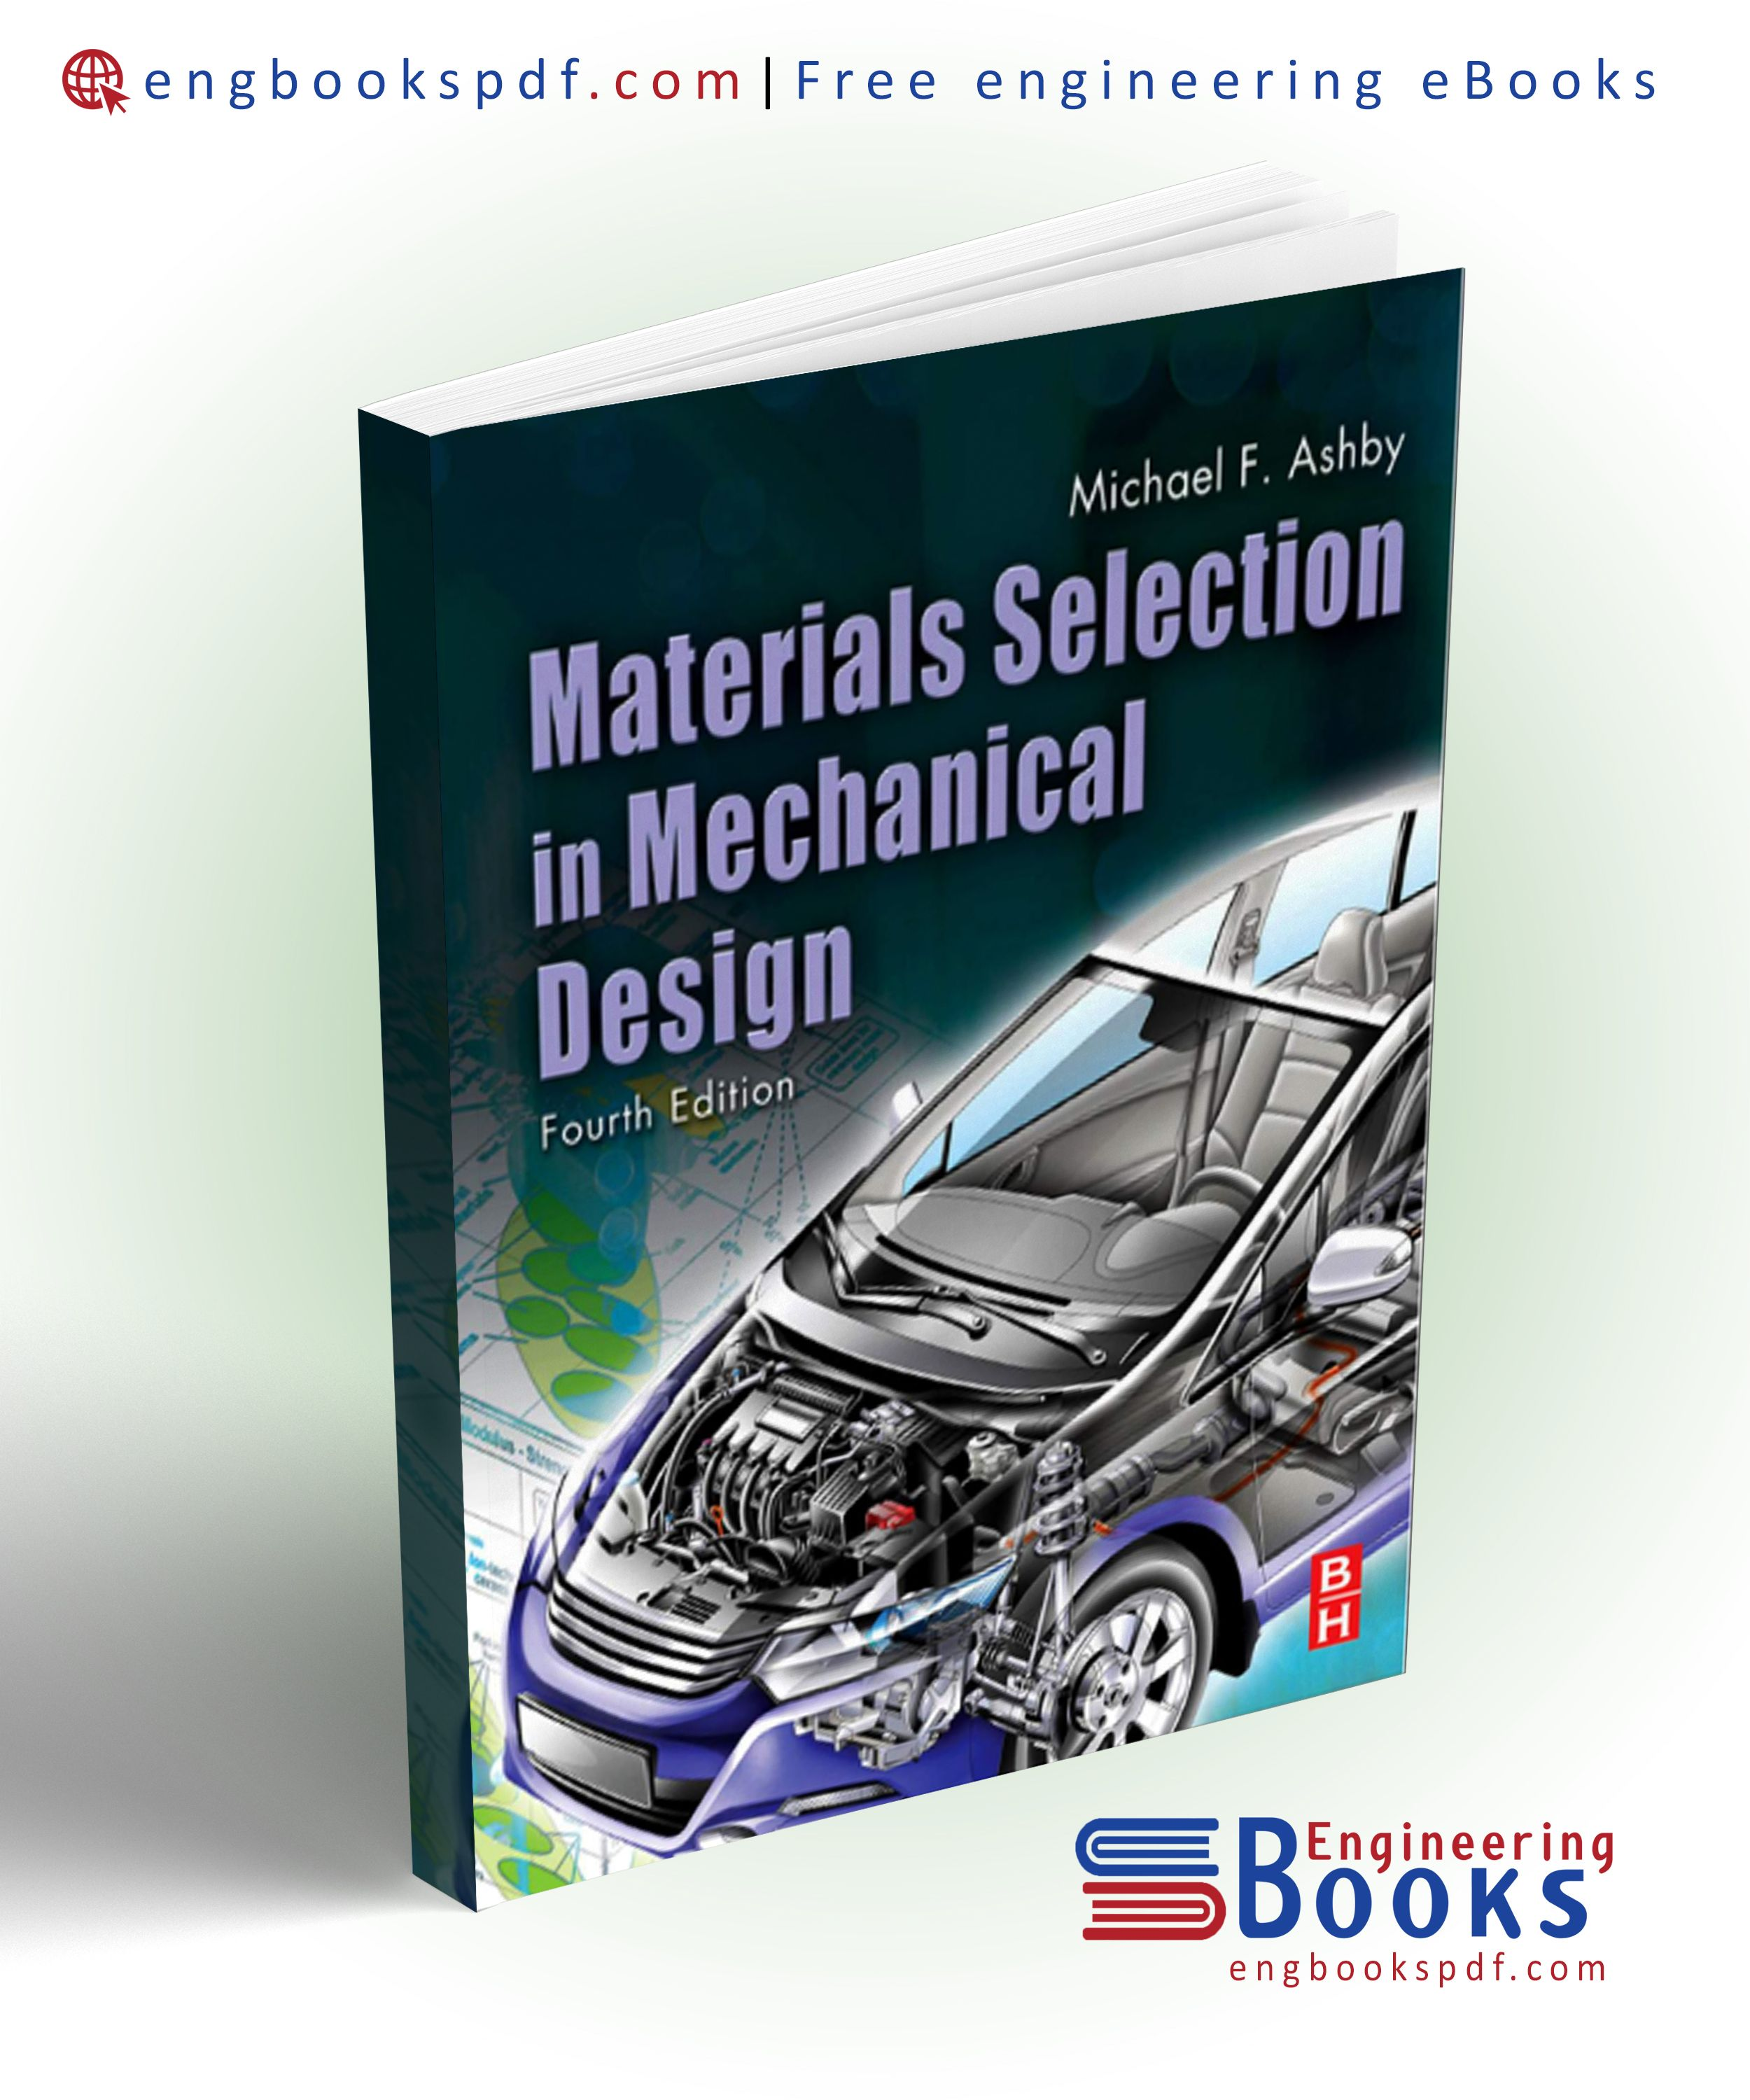 Download Pdf Of Materials Selection In Mechanical Design By Michael F Ashby For Free Mechanical Design Materials Engineering Mechanic